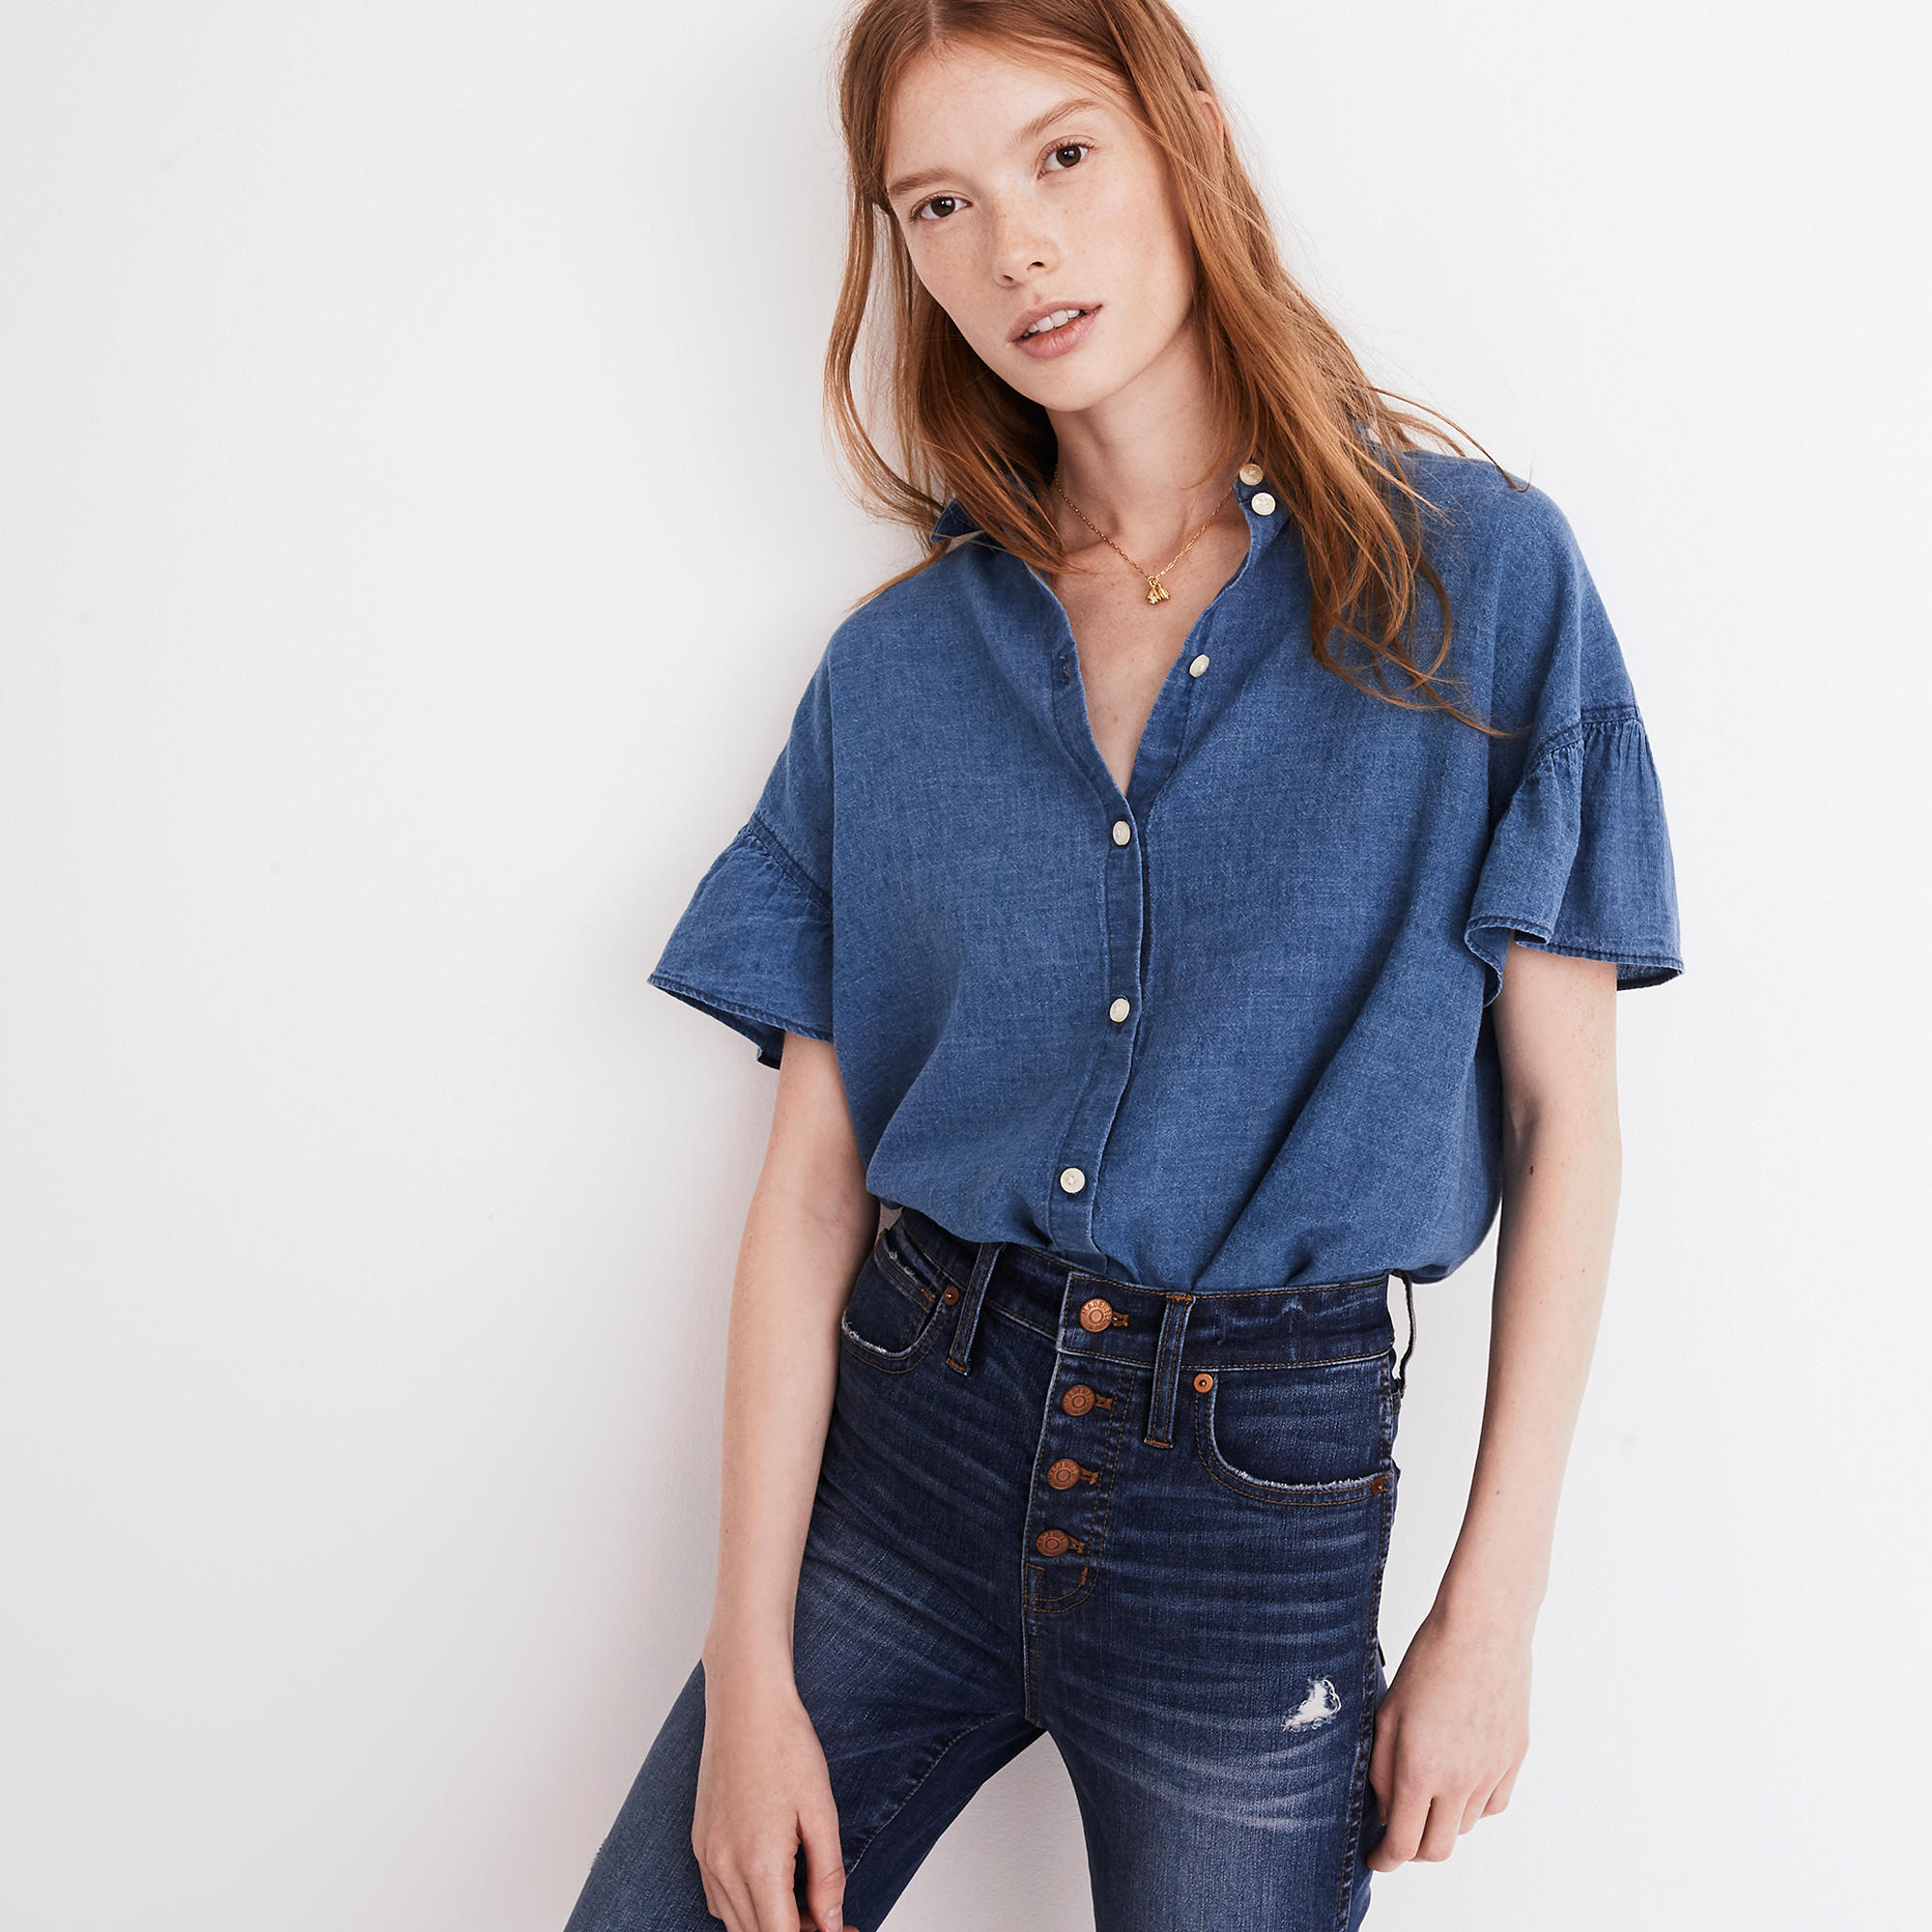 Madewell Central Ruffle-Sleeve Shirt in Indigo - Weekly Finds by popular North Carolina style blogger Glitter, Inc.